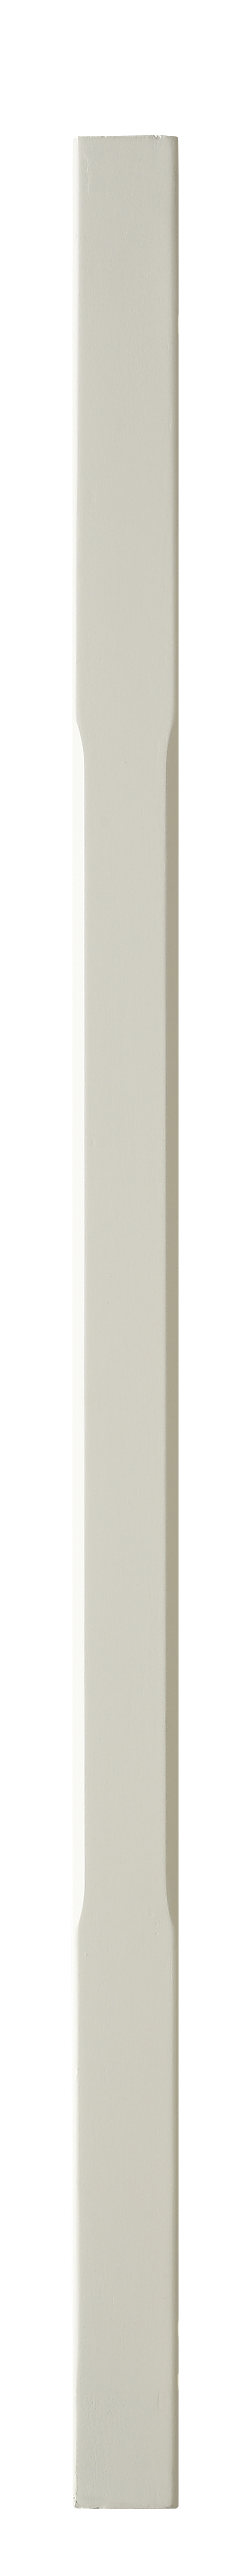 1 White Stop Chamfer Baluster 900 41